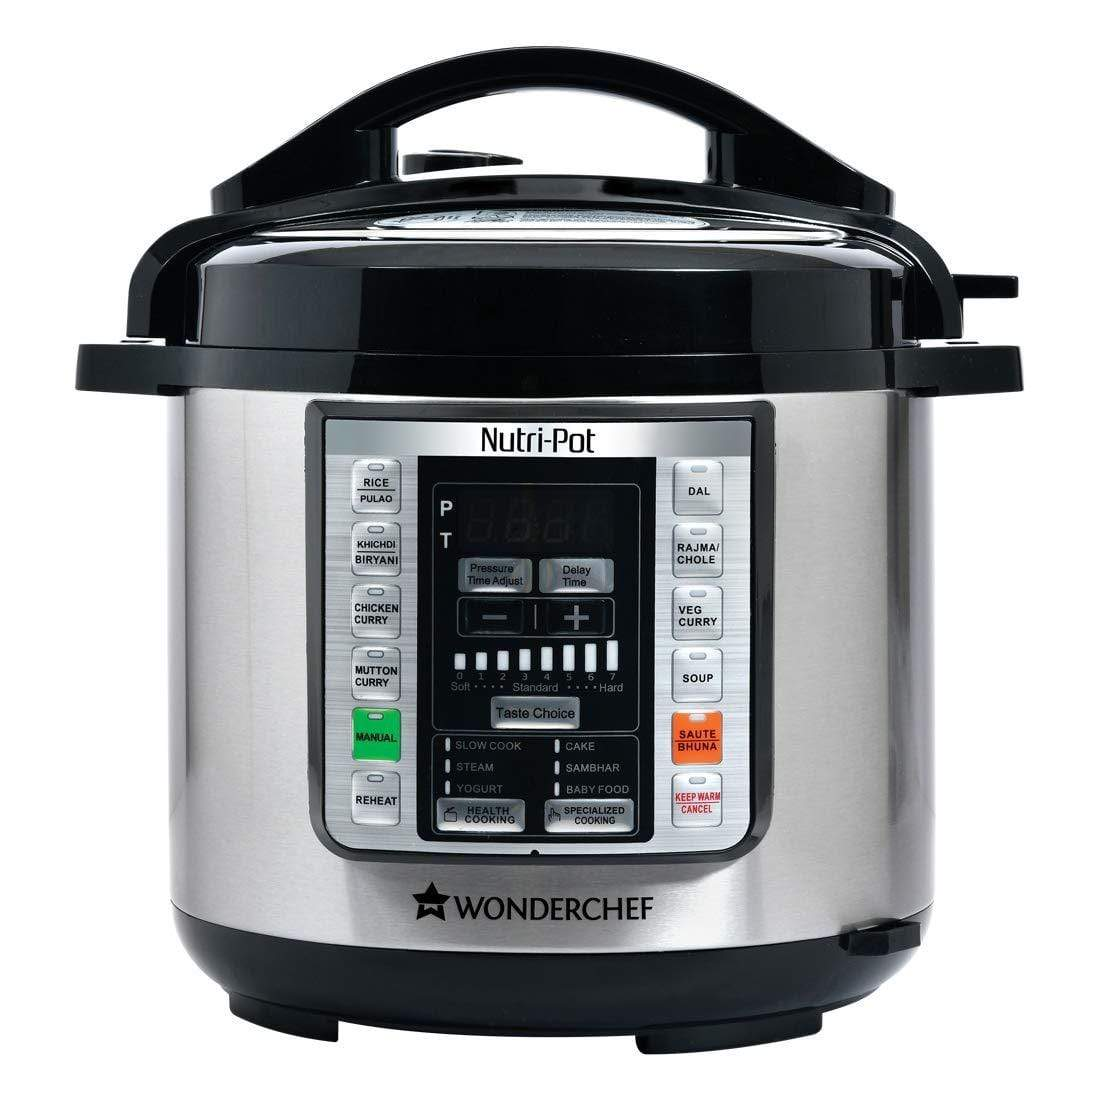 Wonderchef Nutri-Pot 6-Litres 1000 Watts (With 304 Stainless Steel Pot) - KITCHEN MART